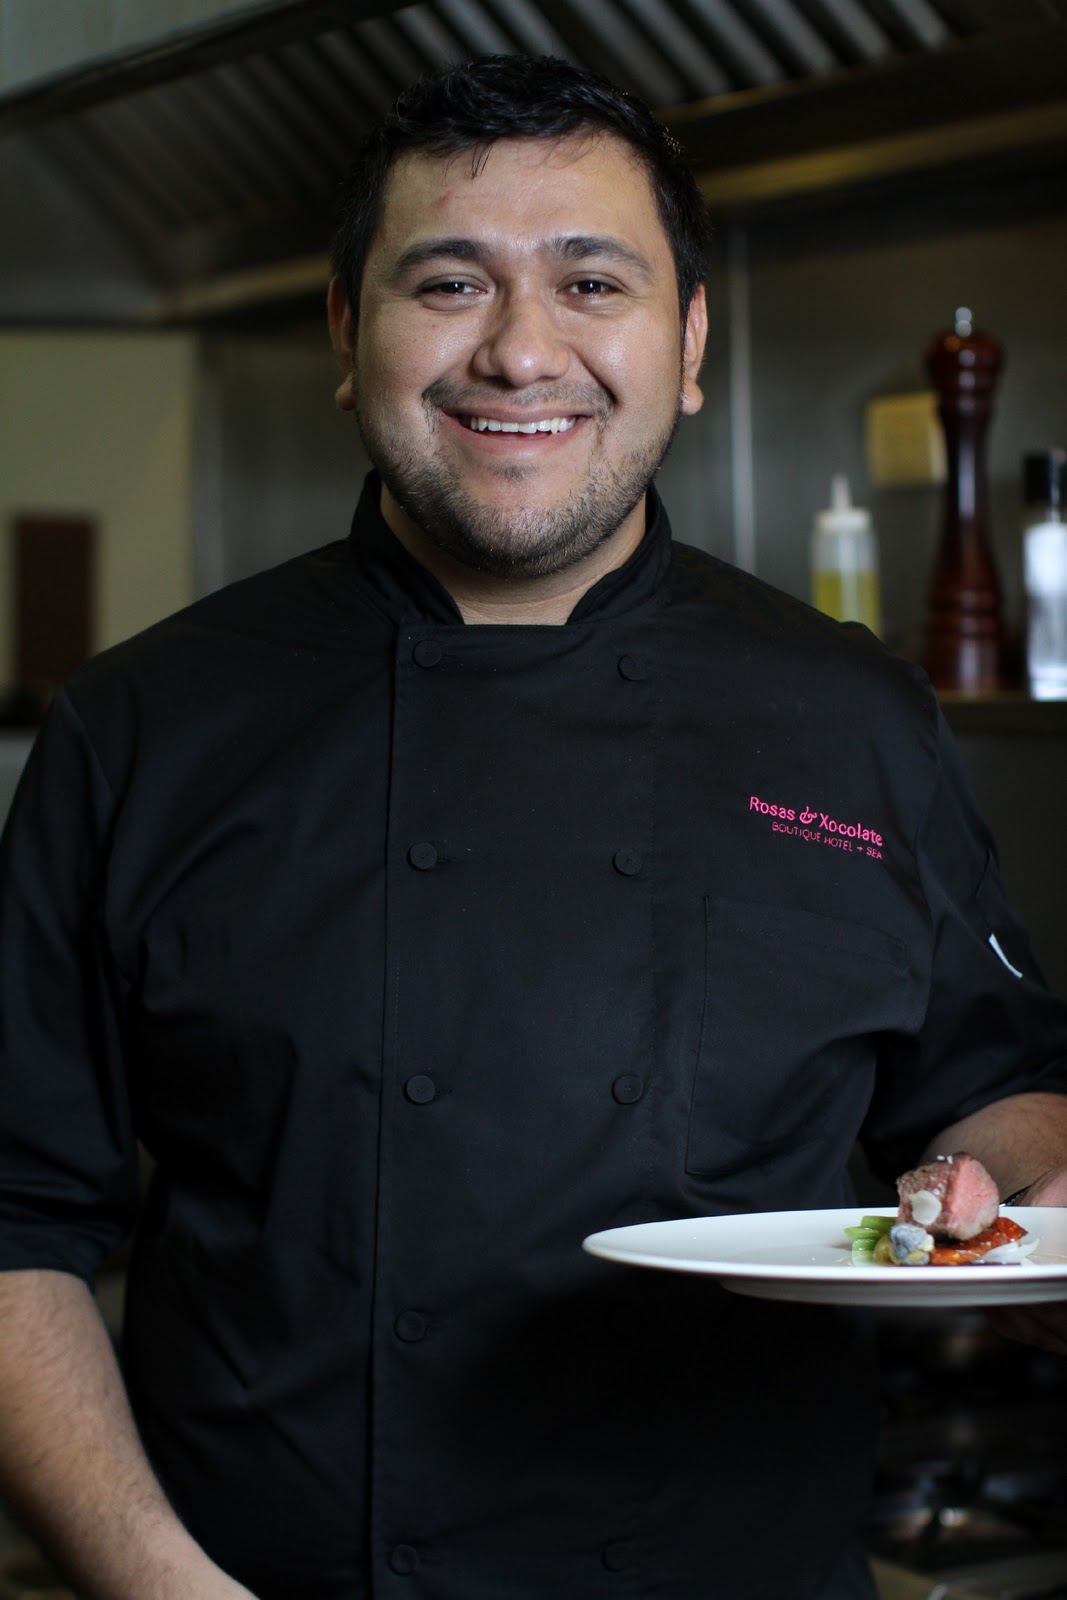 Chef Mario Espinosa (Photo: travesiasporelmundo.blogspot.com)